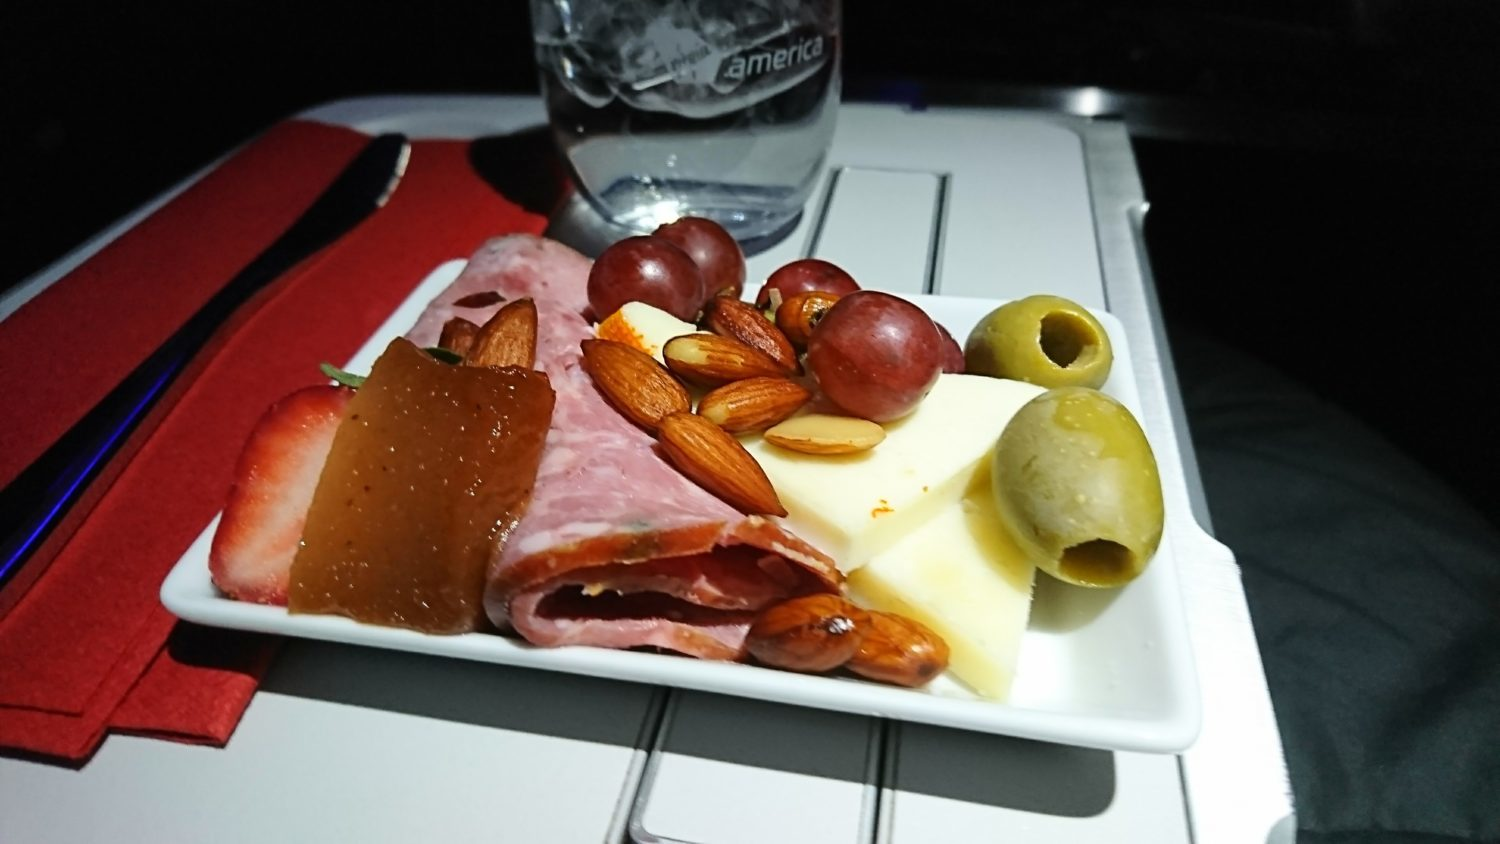 Meat and cheese snack in Virgin America First Class.